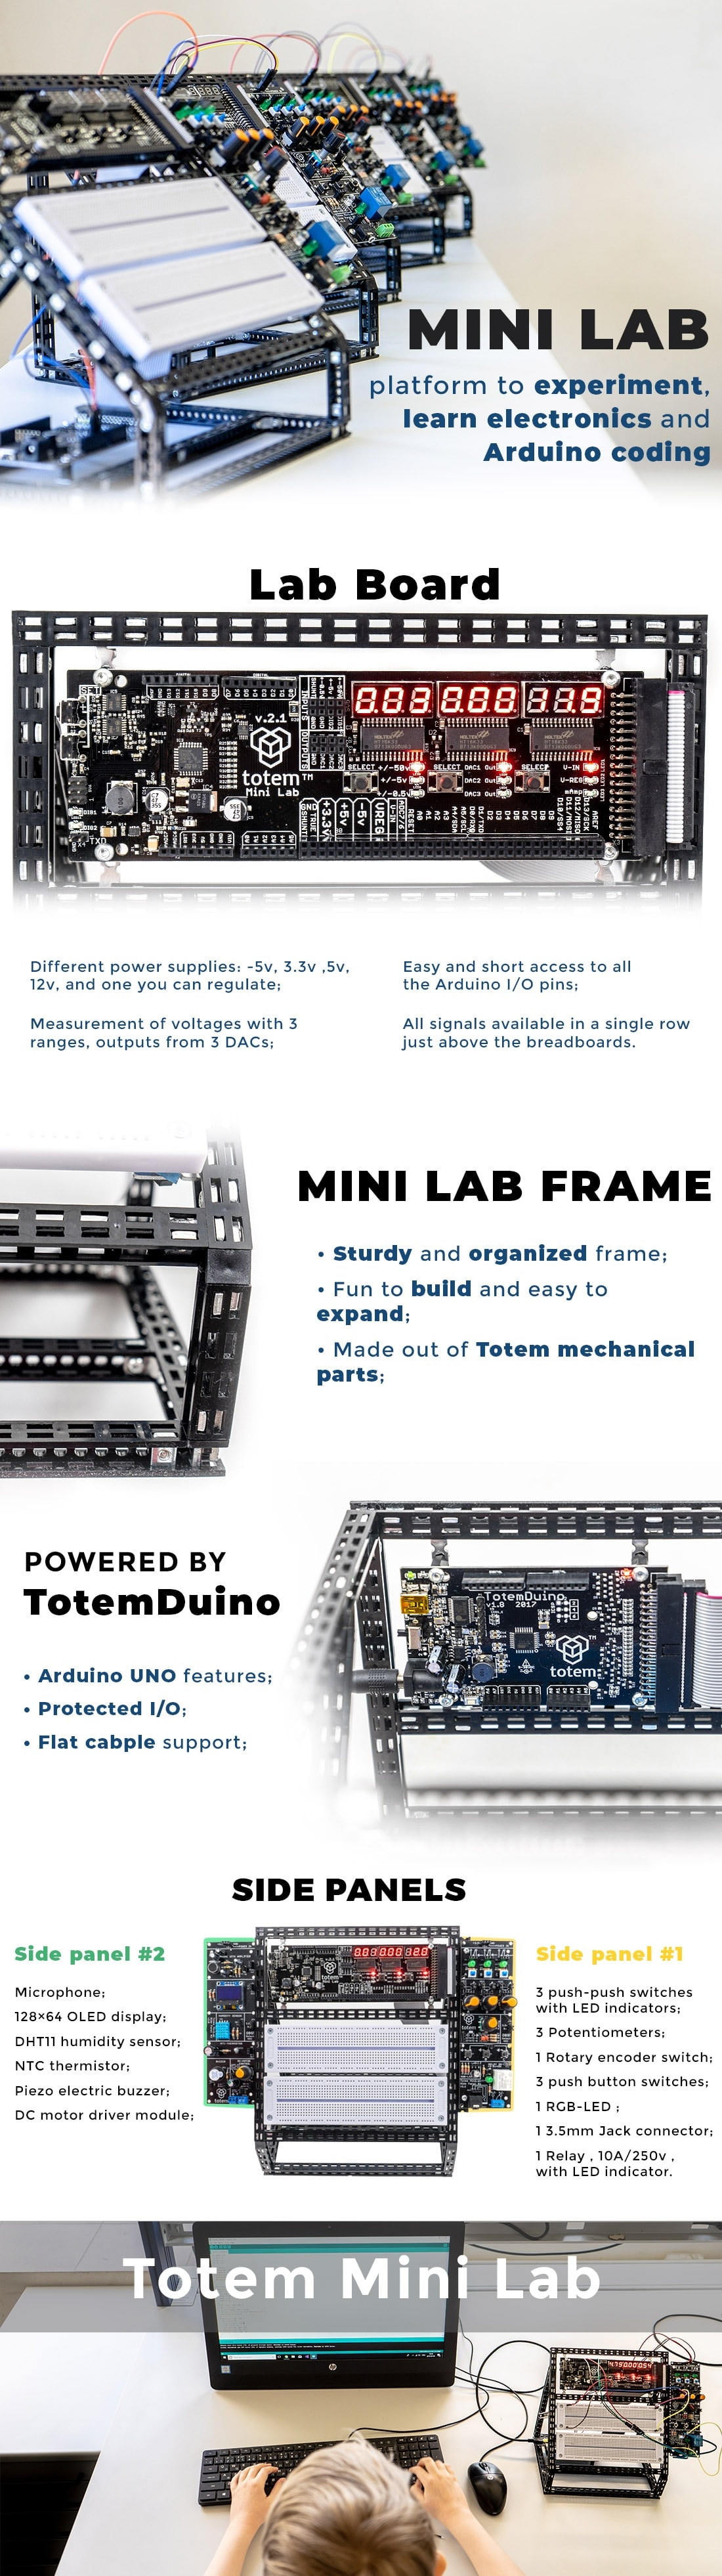 Mini-lab-product-page